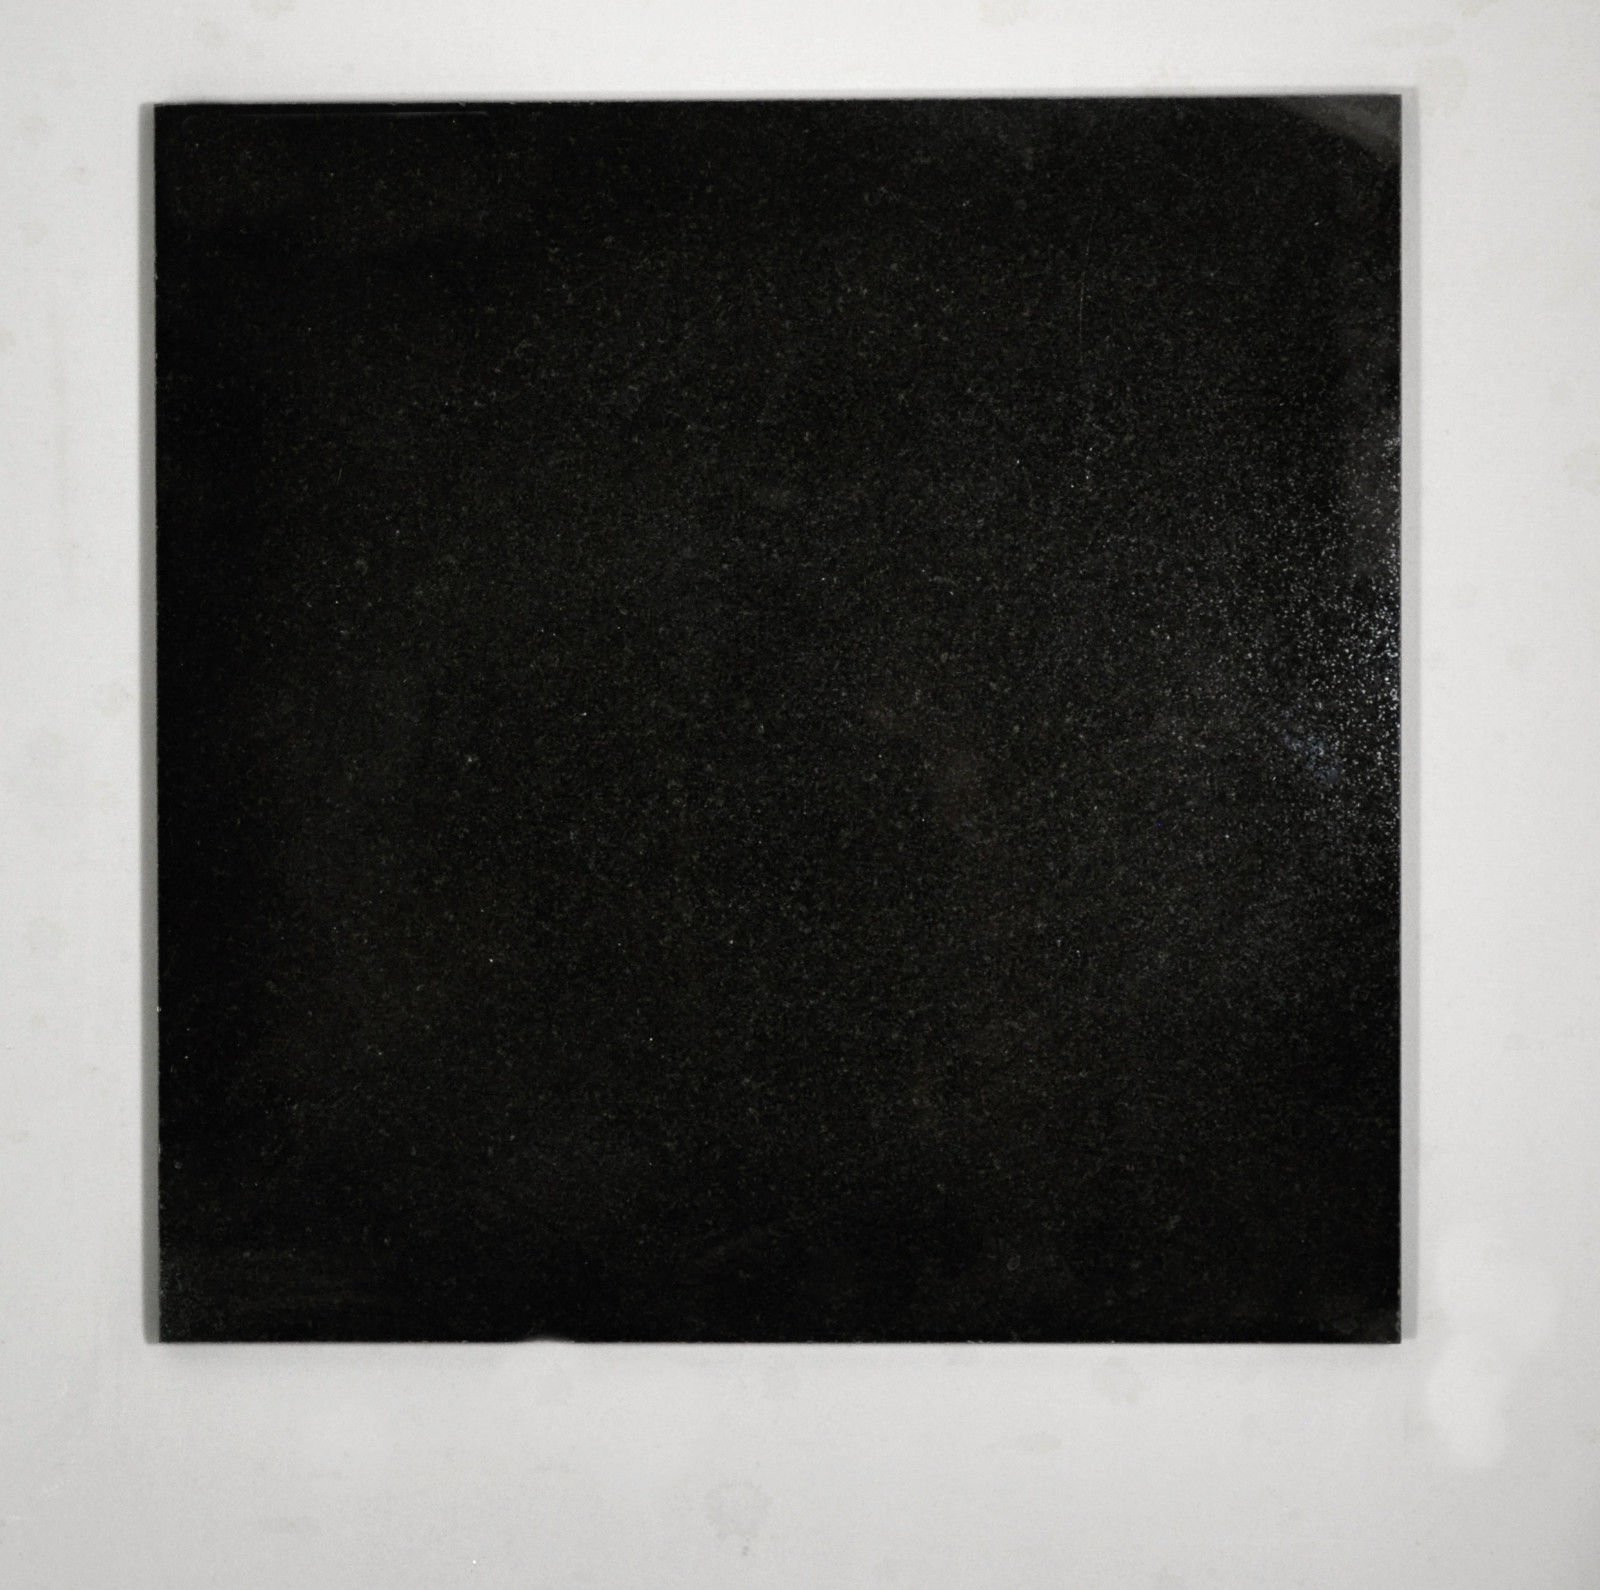 12x12 Absolute Black Granite Kitchen Bathroom Floor Tile Backsplash Patio T-126